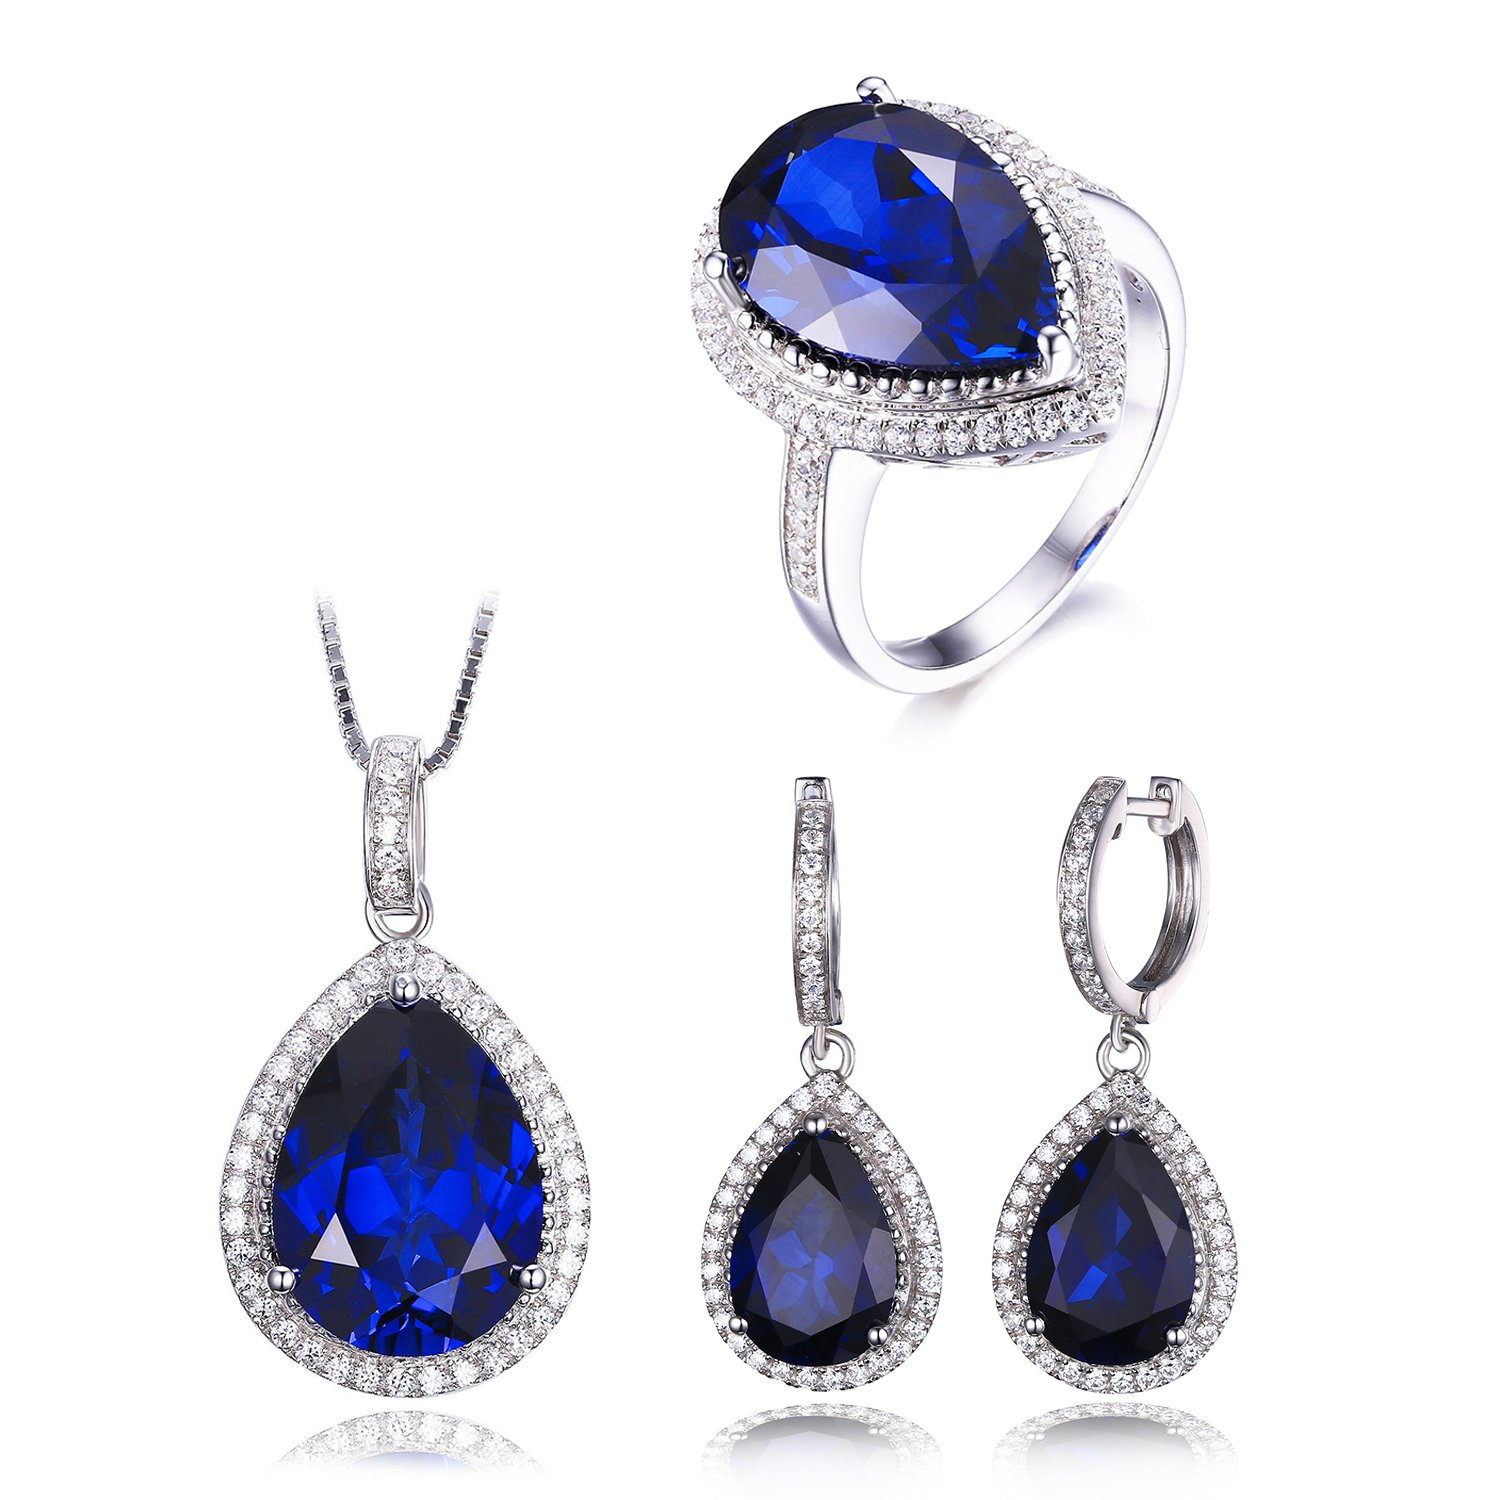 JewelryPalace Women's Luxury Pear Cut Created Blue Sapphire Engagement Ring Pendant Dangle Earrings Solid 925 Sterling Silver Size 7